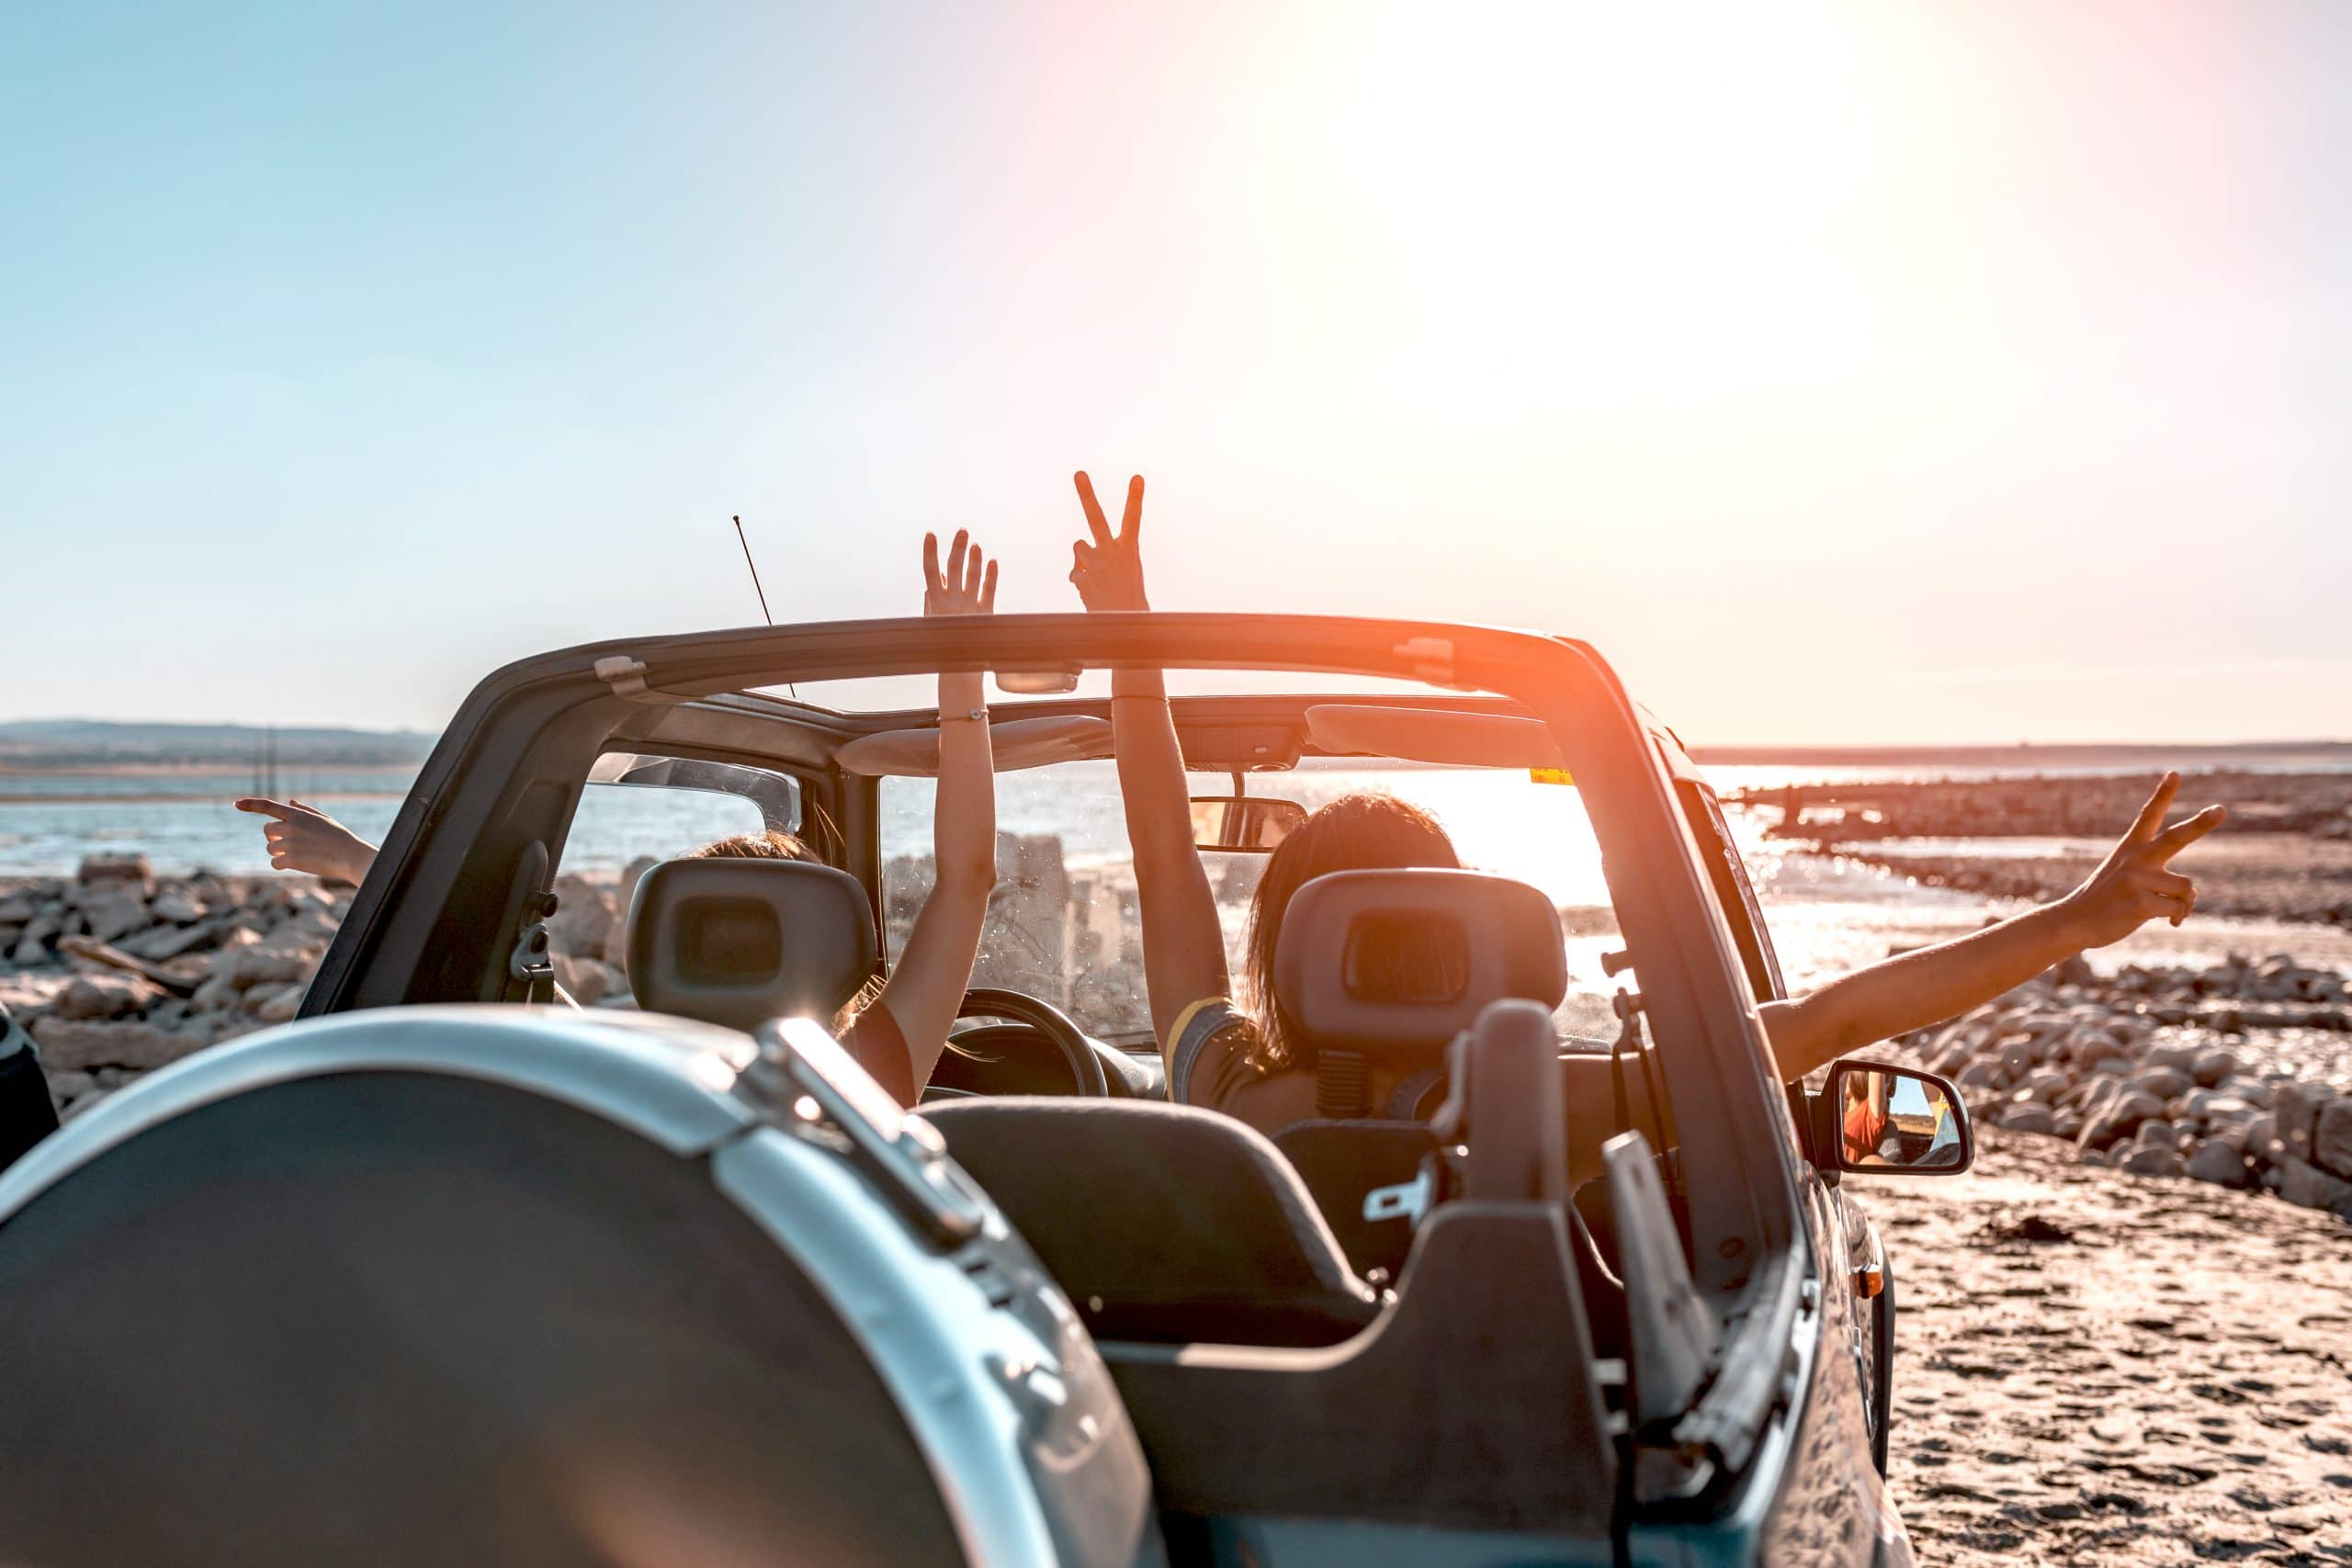 Two people in an open air Jeep celebrate with their hands in the air by the beach.